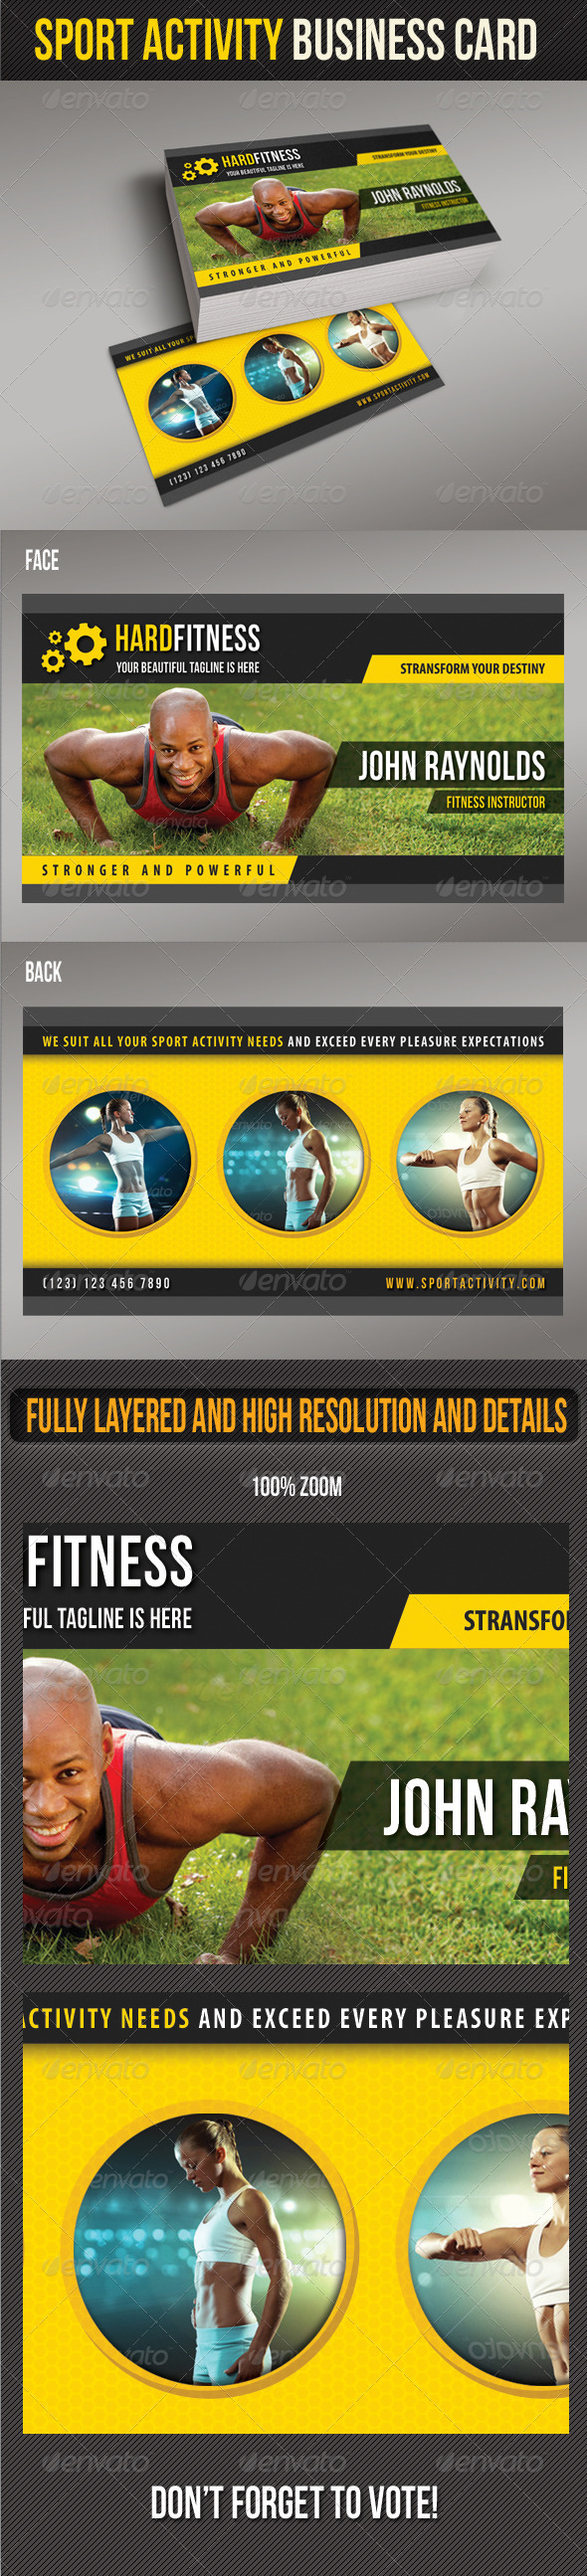 Sport Activity Business Card 02